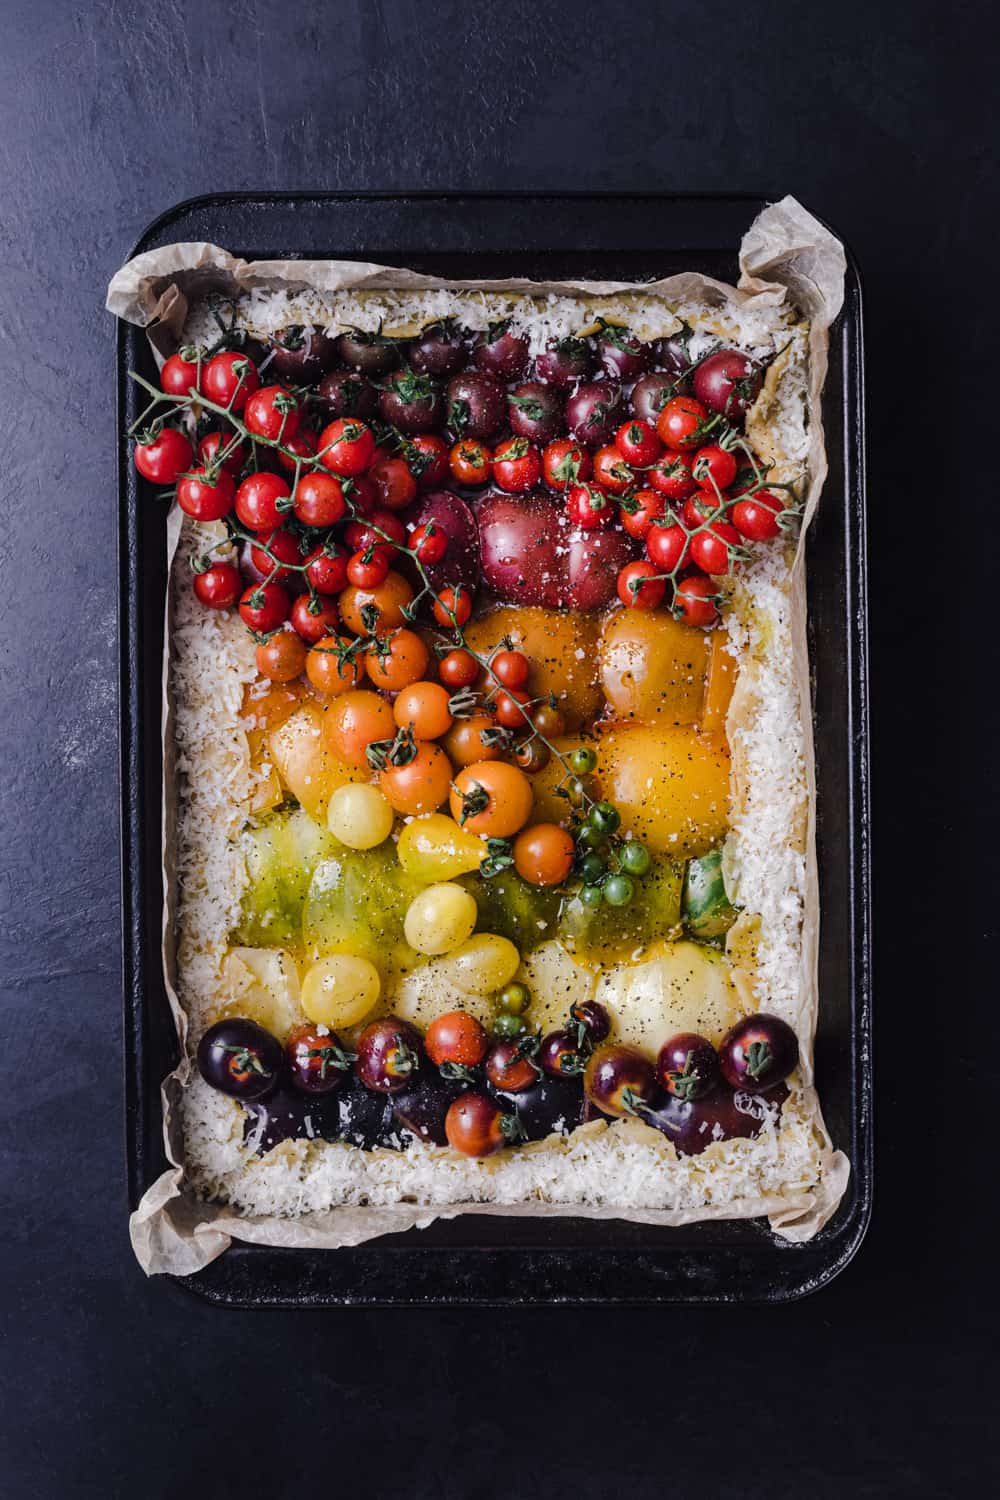 An heirloom rainbow tomato tart filled with very colorful tomatoes! Pre-oven, overhead shot, on a black background.